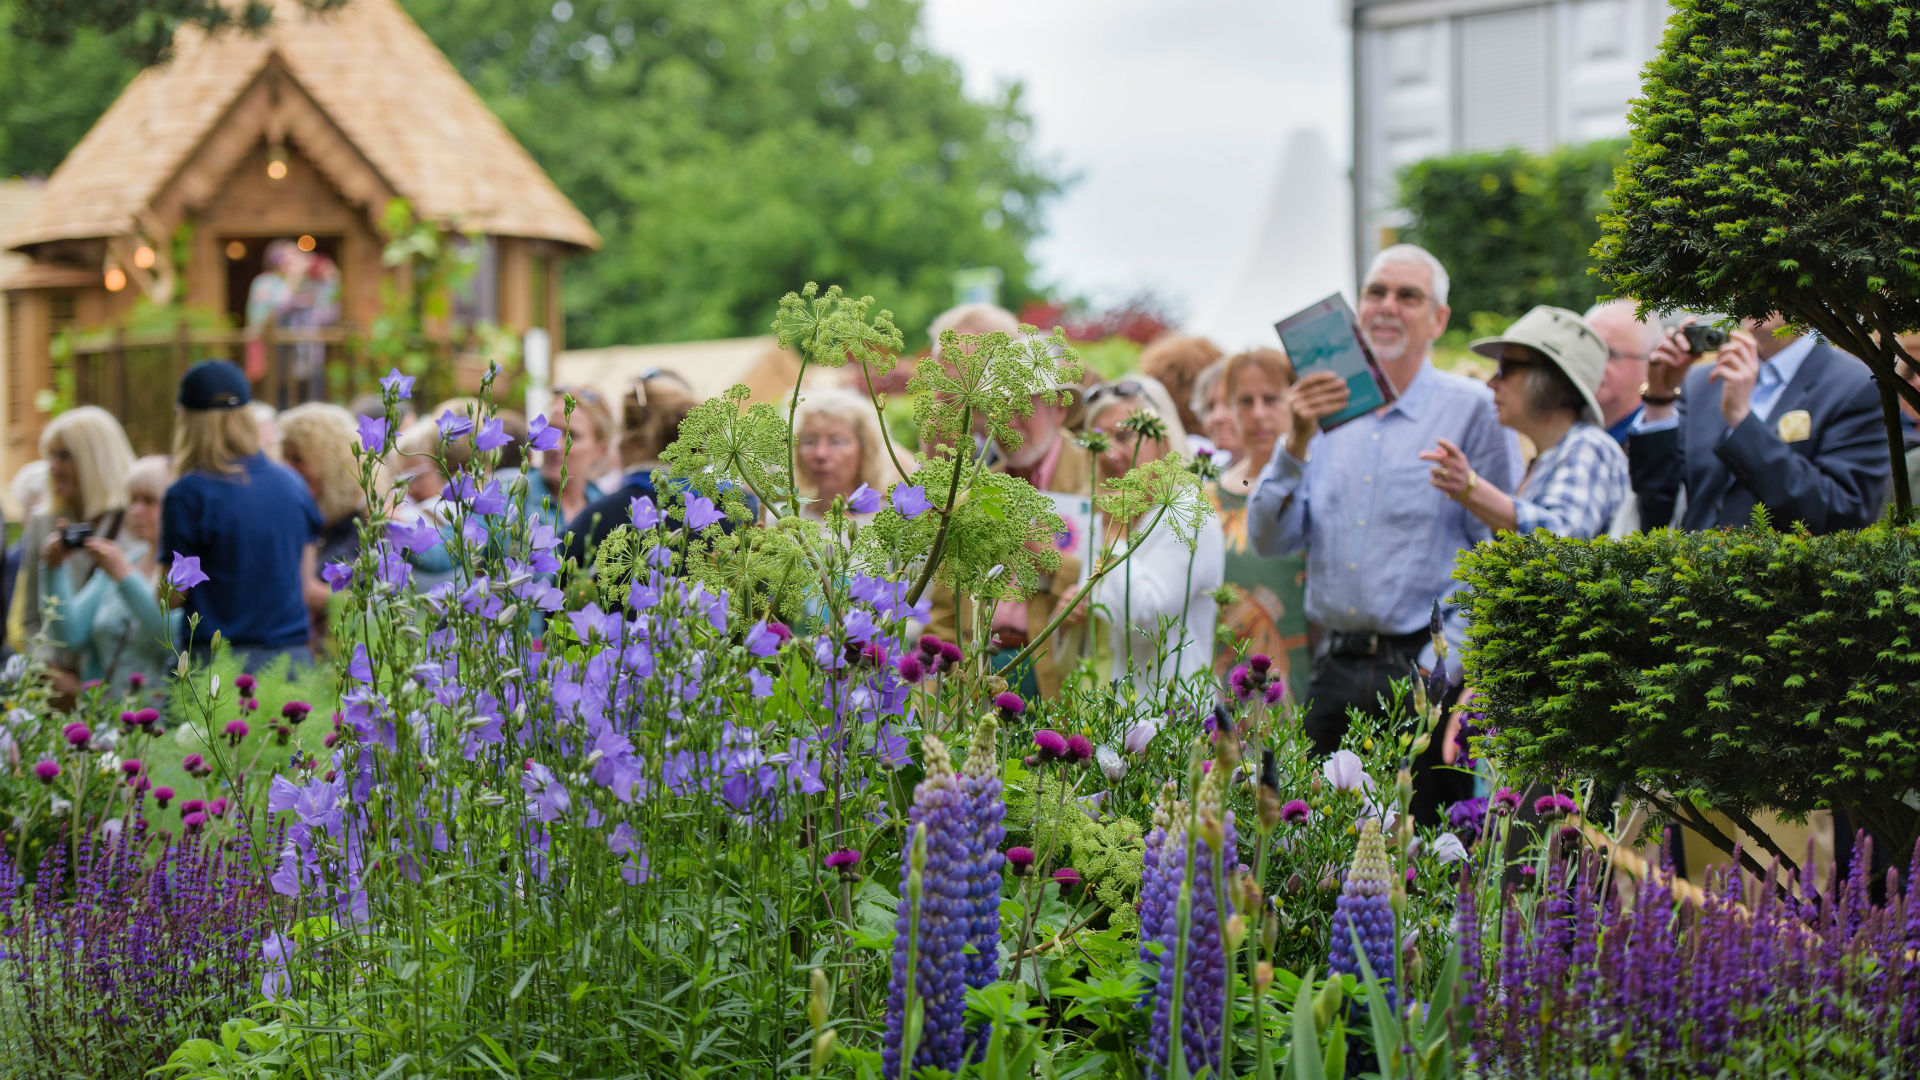 Visitors view The Morgan Stanley Garden at RHS Chelsea Flower Show 2017.